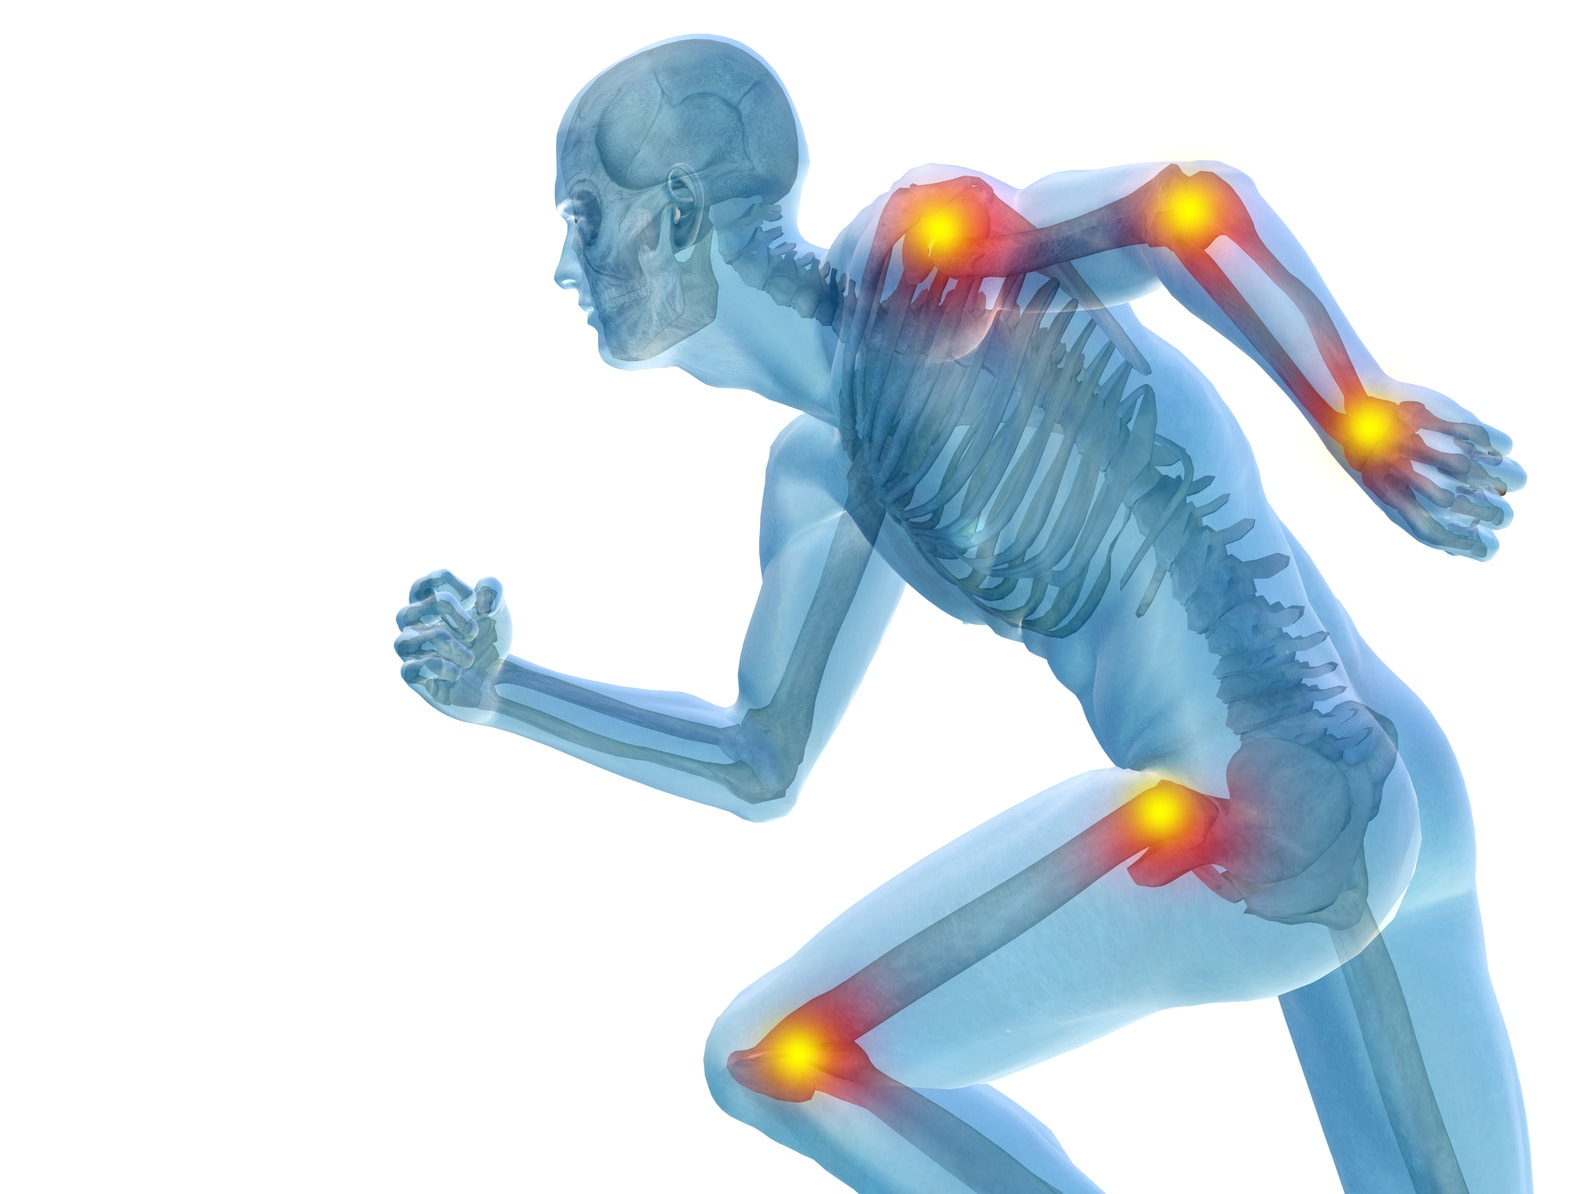 PRP Treatment can be effective in treating joint injuries.